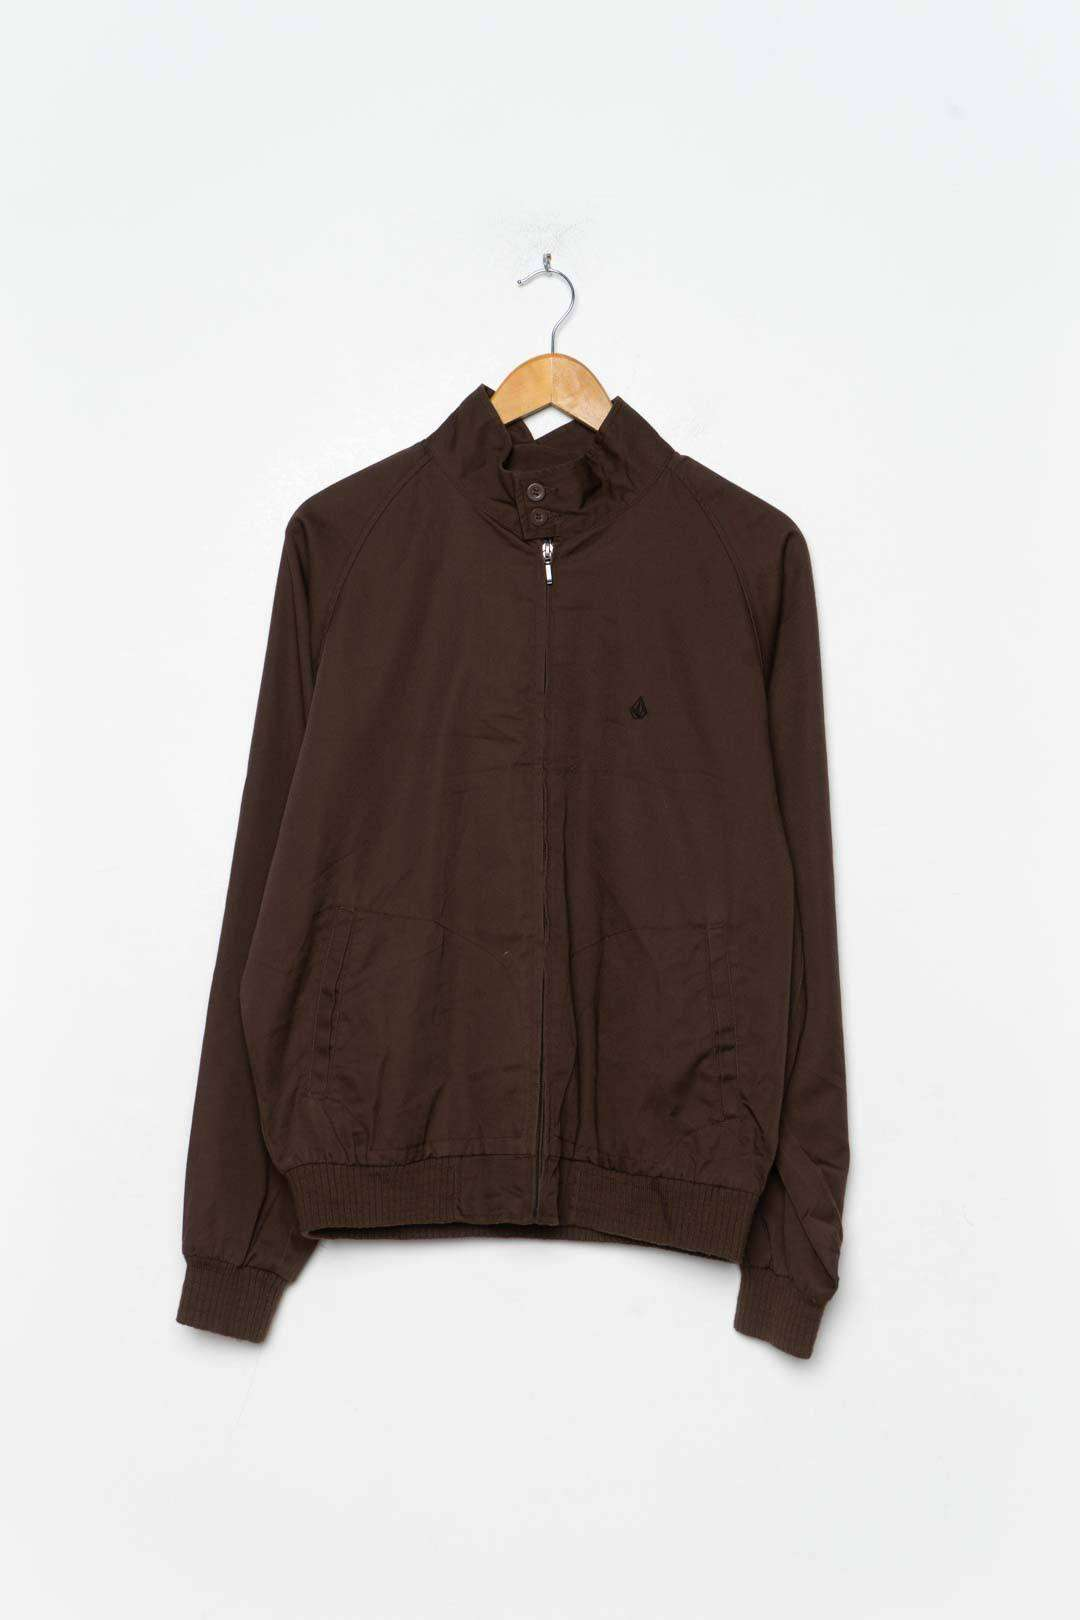 Brown Cotton Bomber Jacket S - VinoKilo.com